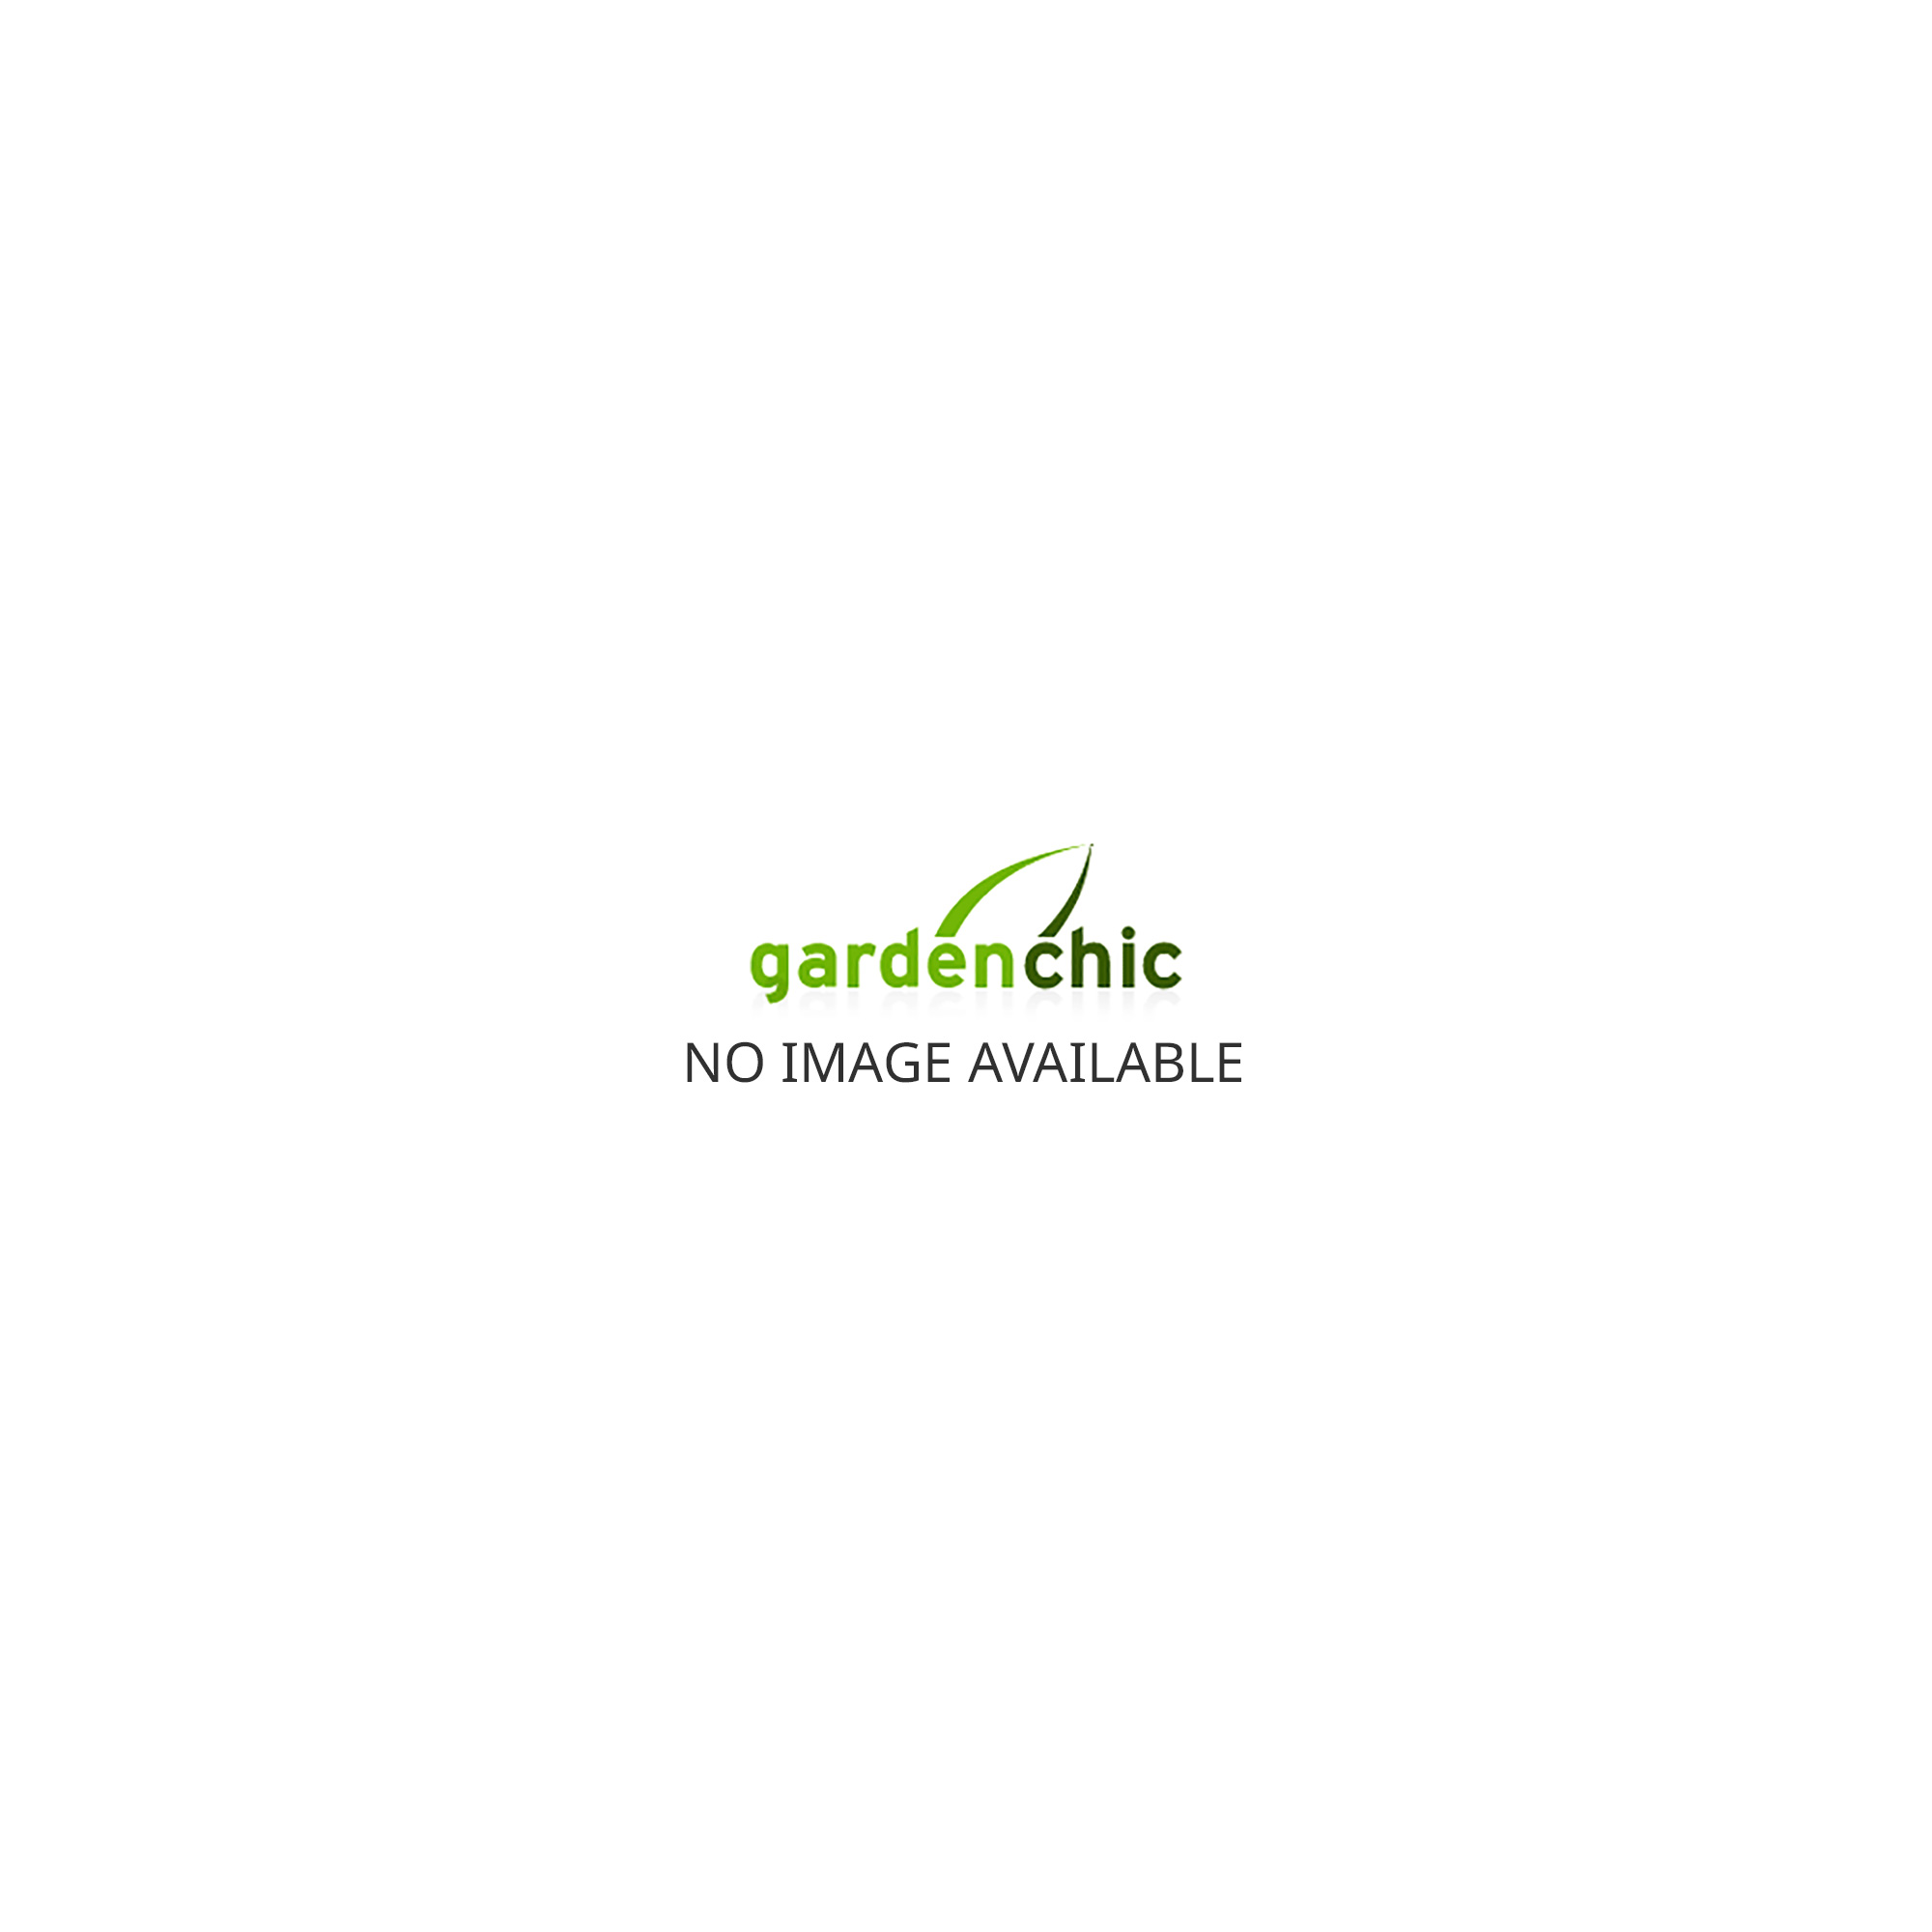 IDA 3300 Wall Garden 8ft x 4ft Greenhouse - Green FREE Matching Base until 31st July 2018